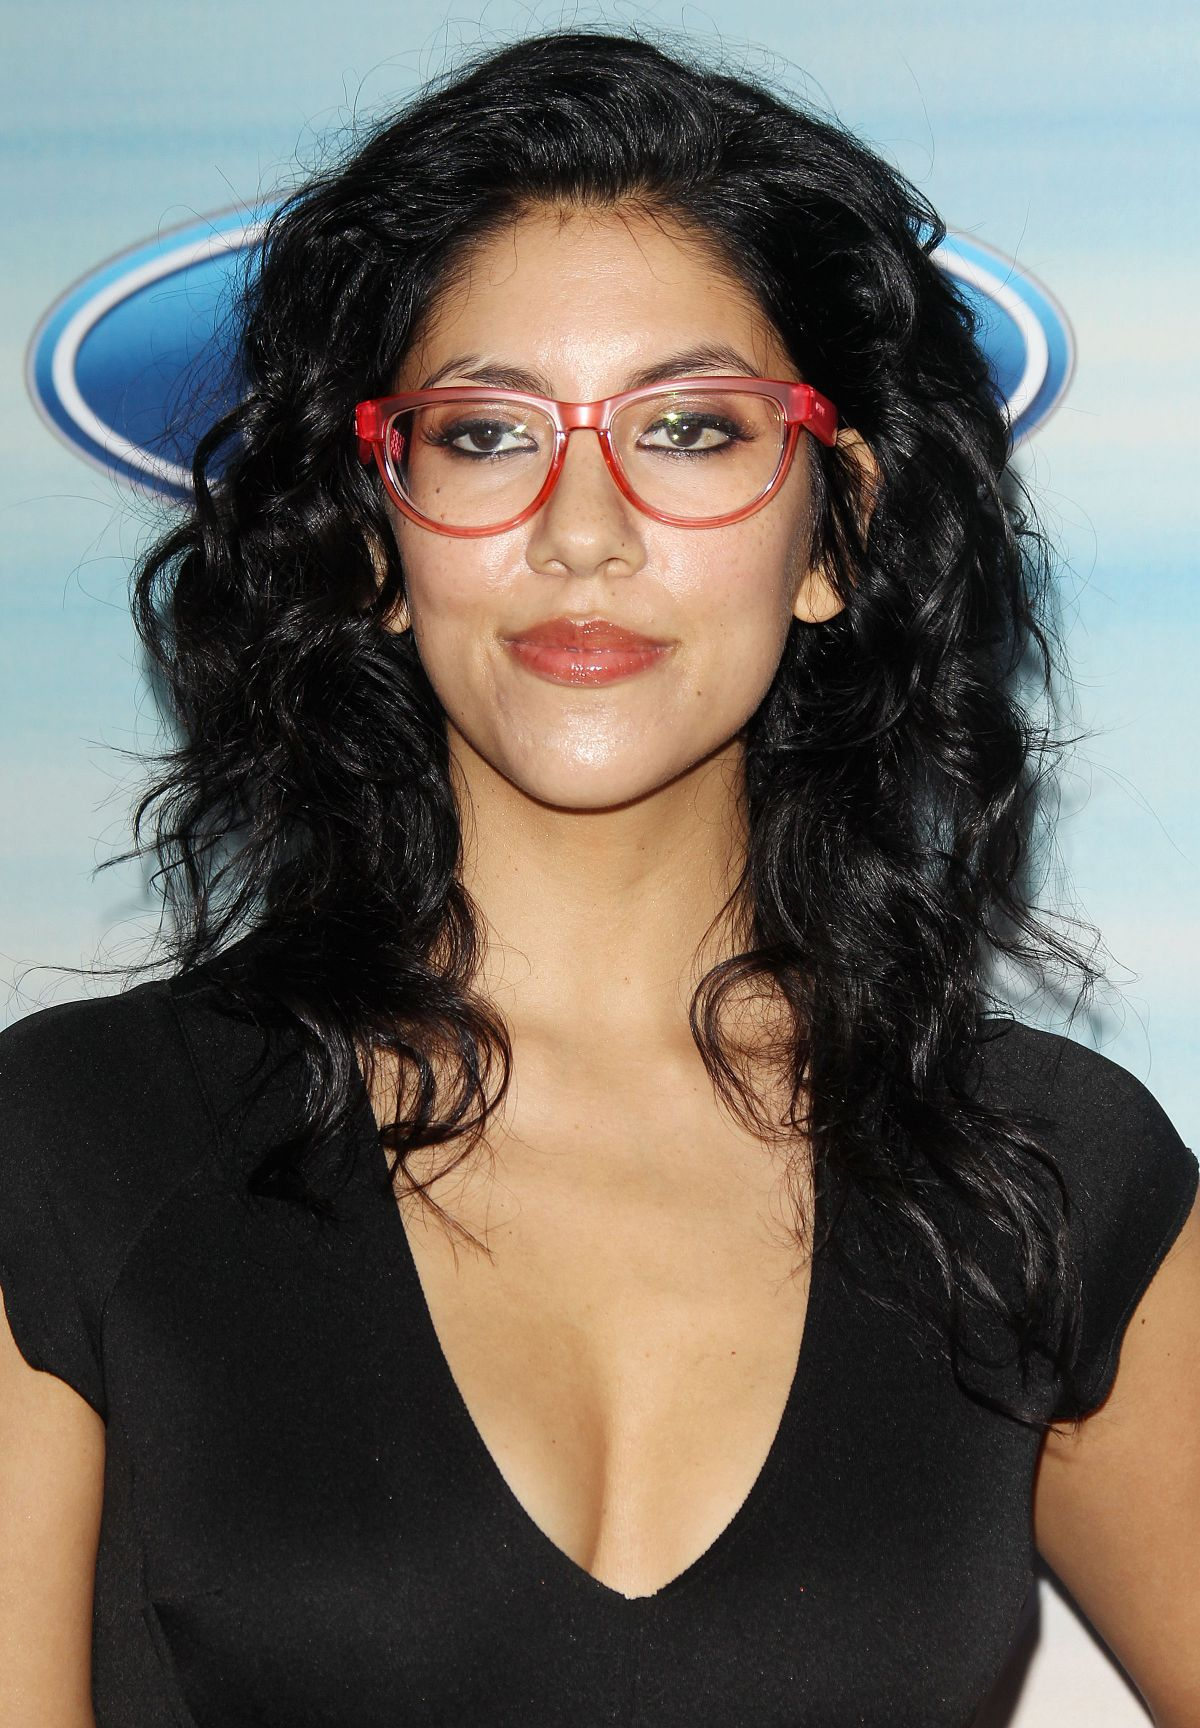 Stephanie Beatriz Free Download Wallpaper For Mobile